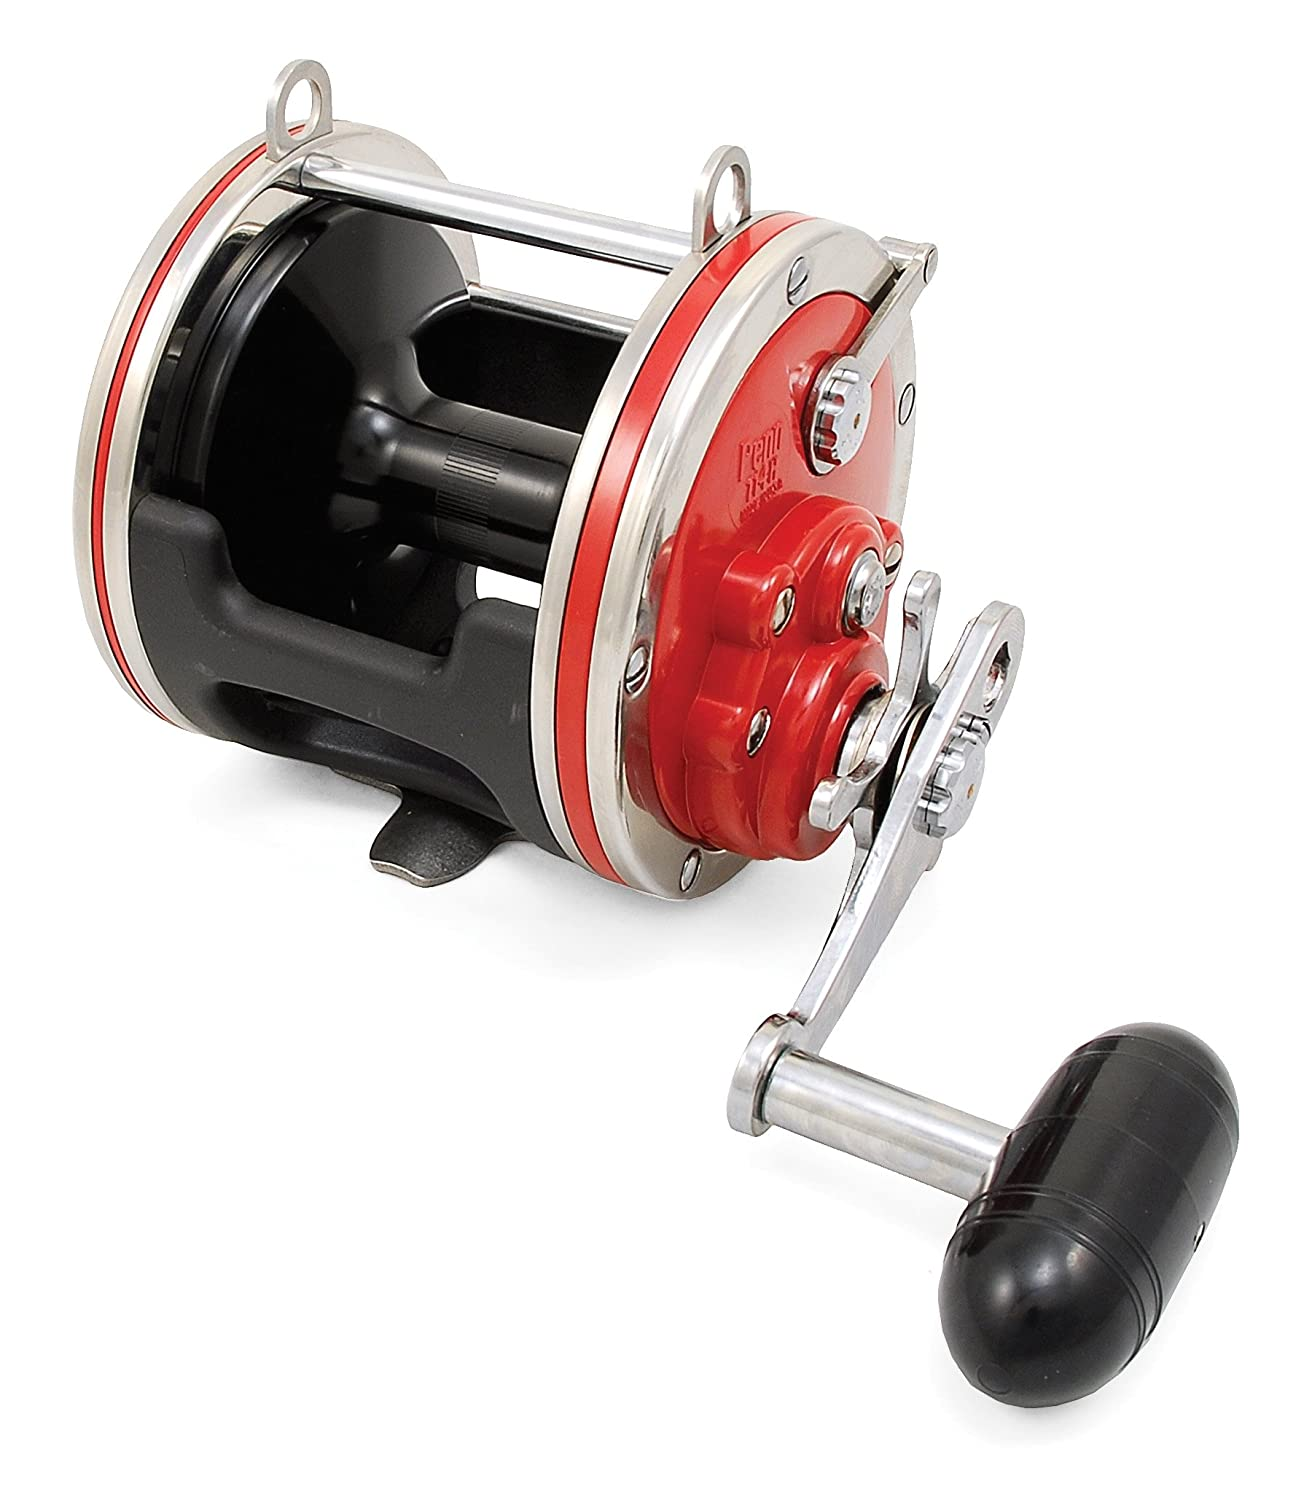 How to spool a conventional reel - Amazon Com Penn Special Senator 114h2lw Fishing Reel Wide Spool Spinning Fishing Reels Sports Outdoors